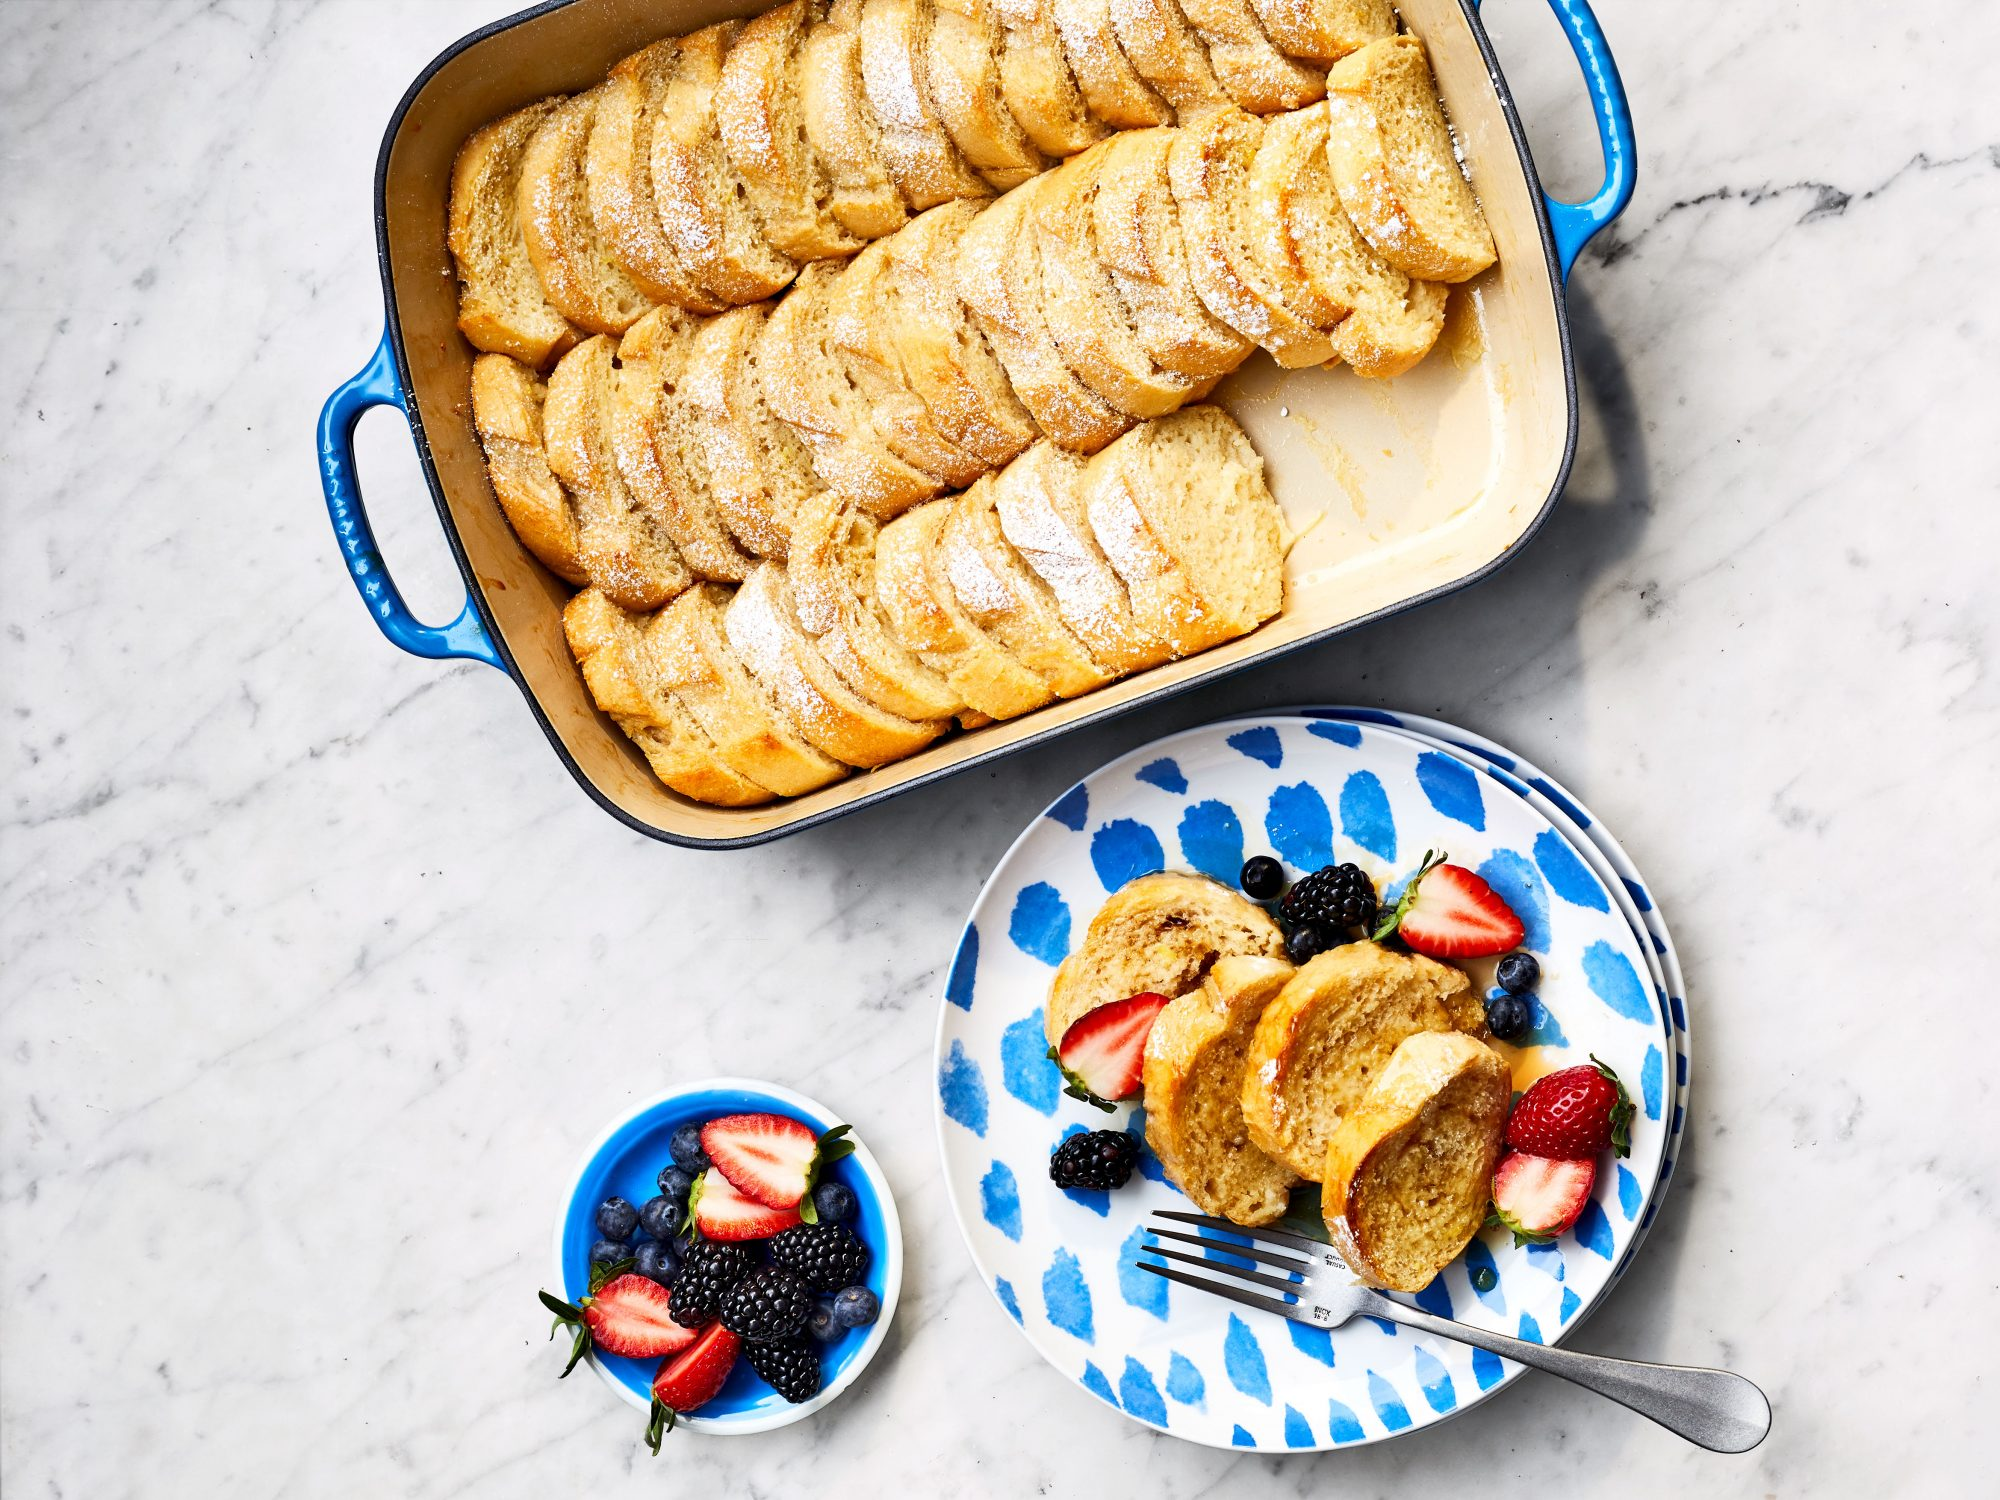 Oven-Baked Buttermilk French Toast